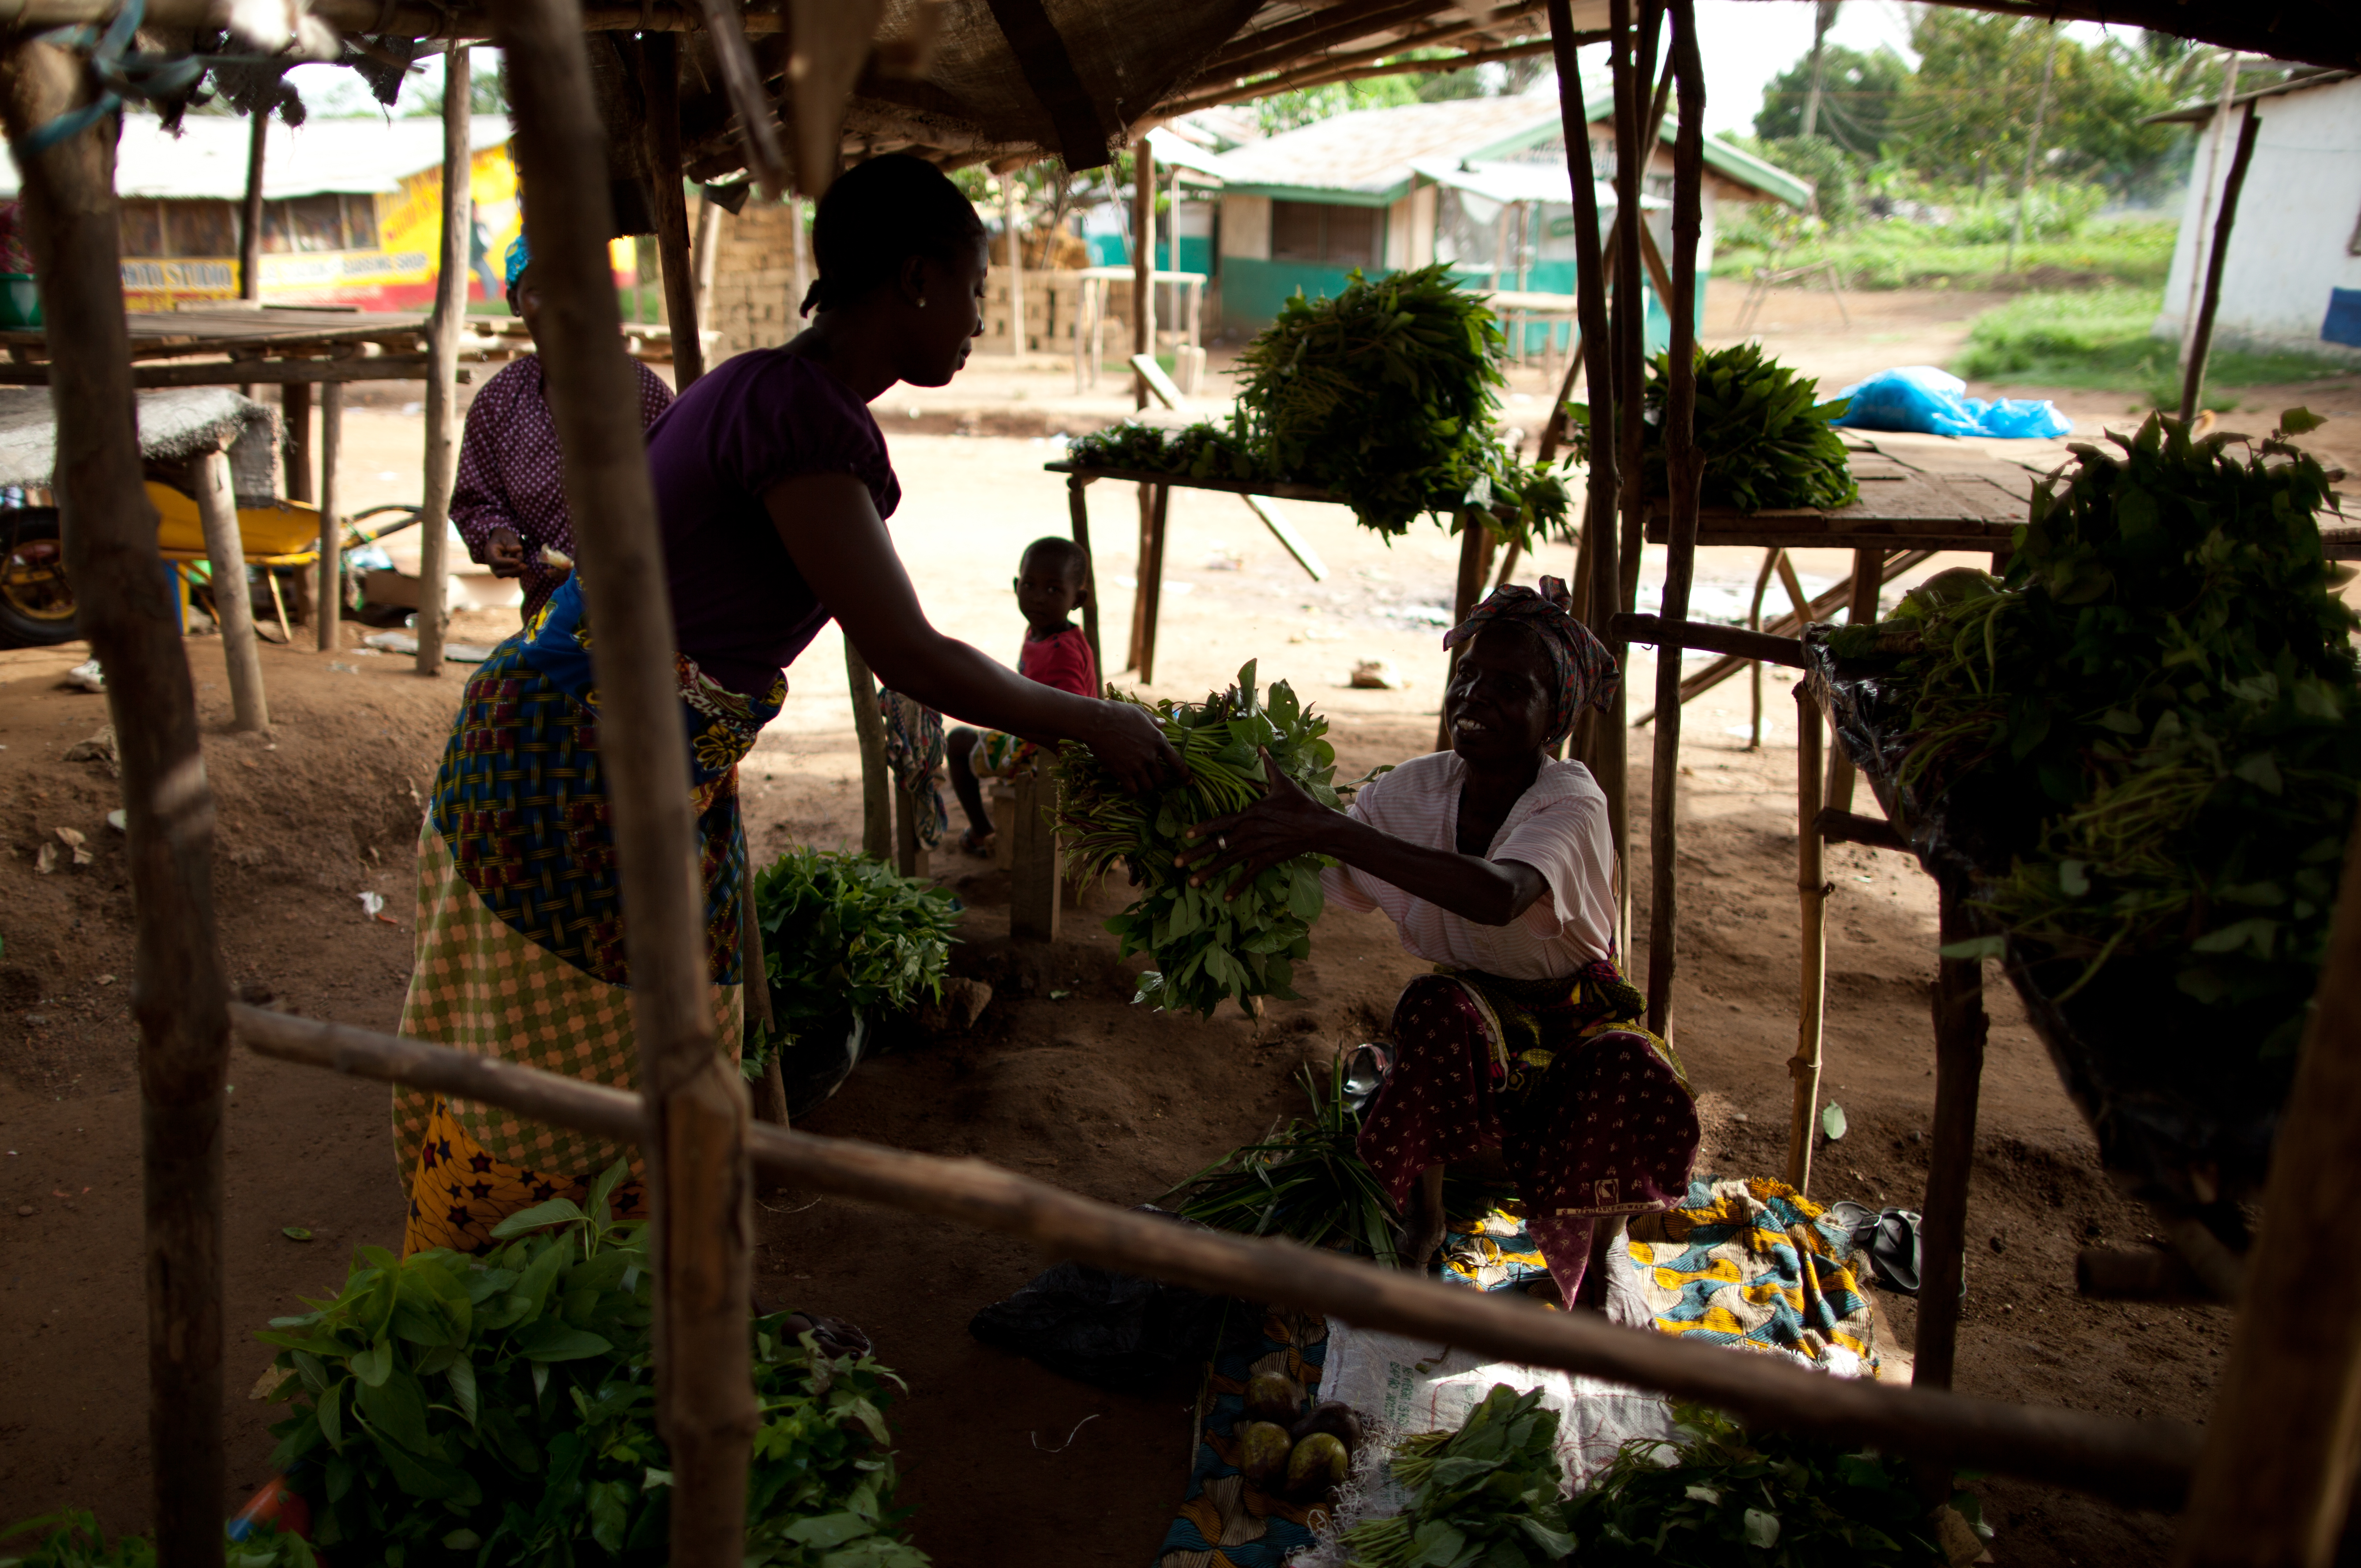 Adama Loyma buys food from the market to prepare a meal for herself and her adopted children.